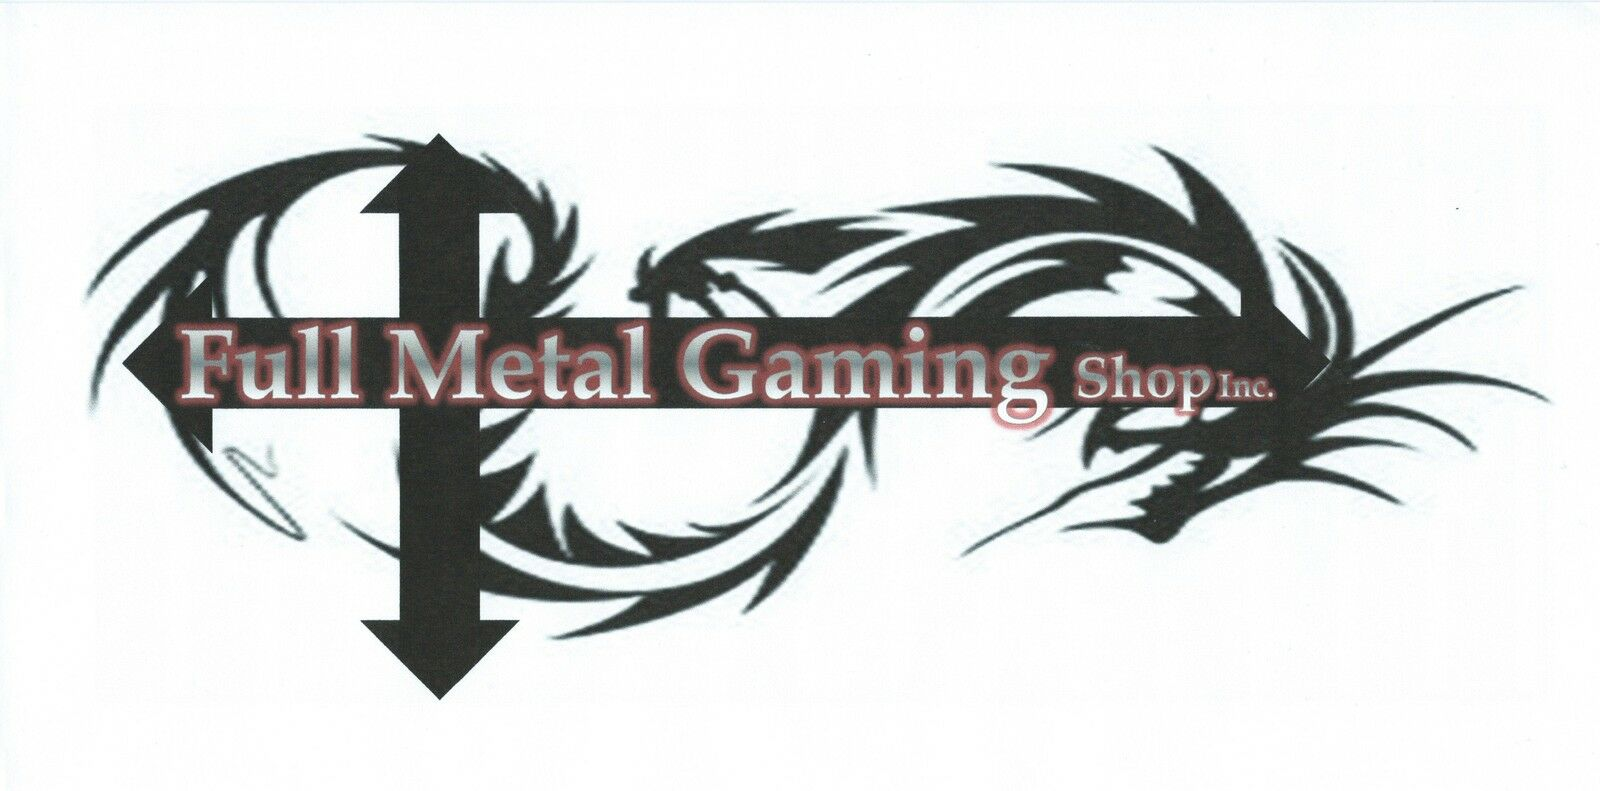 Full Metal Gaming Shop